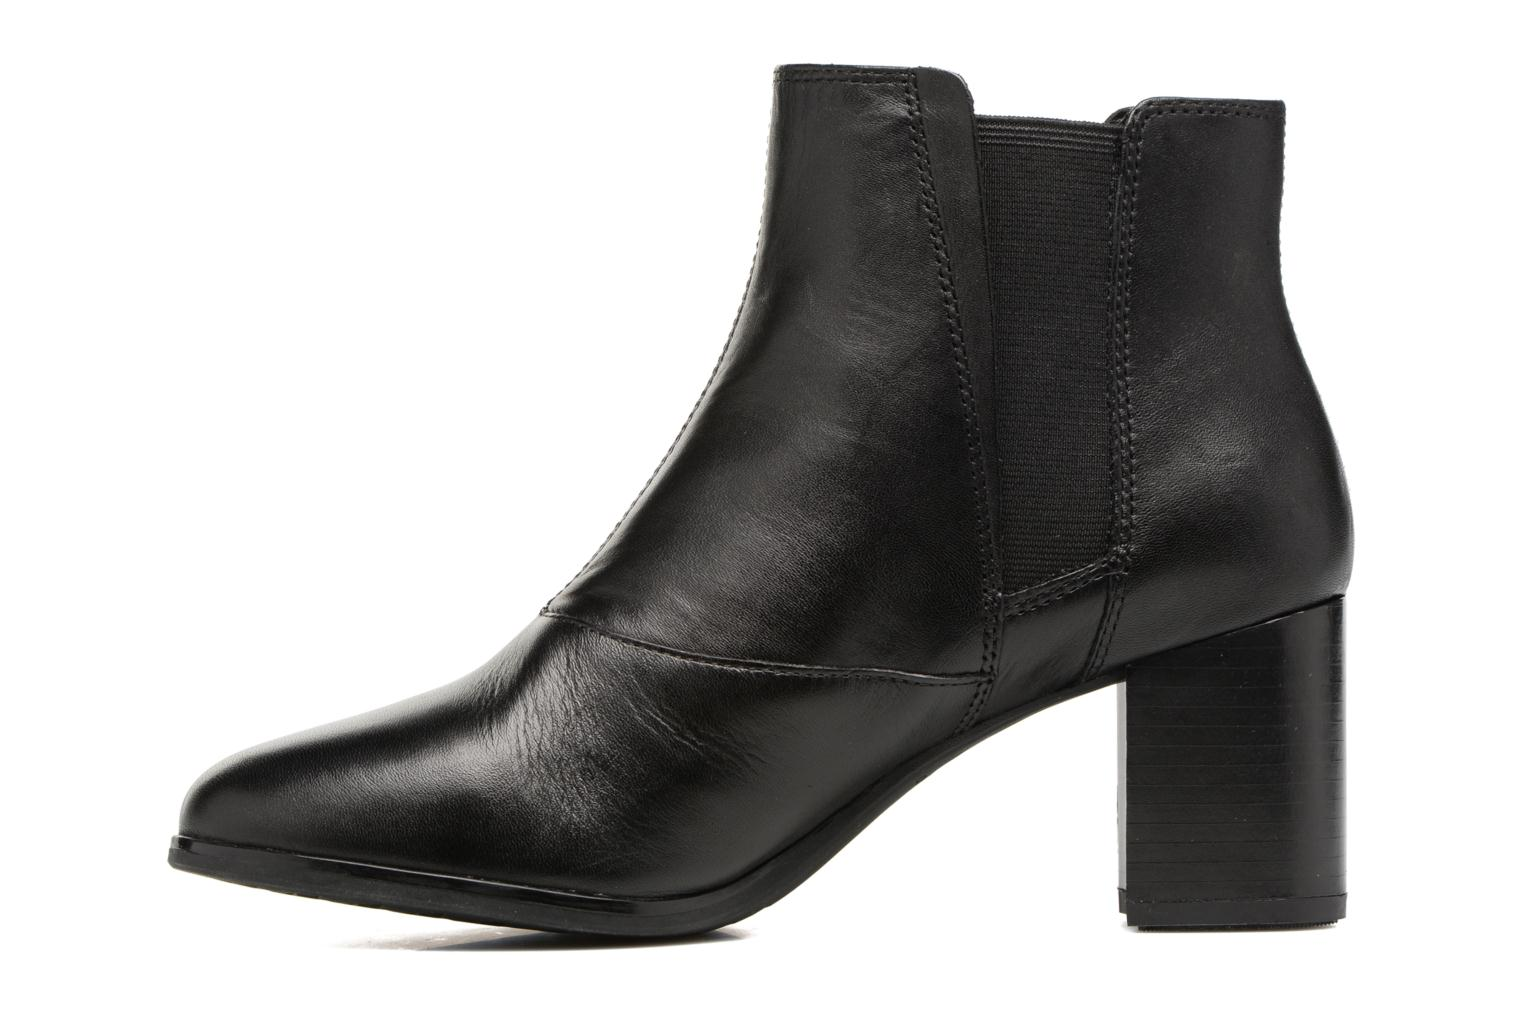 Bottines et boots Vagabond Lottie 4421-201 Noir vue face